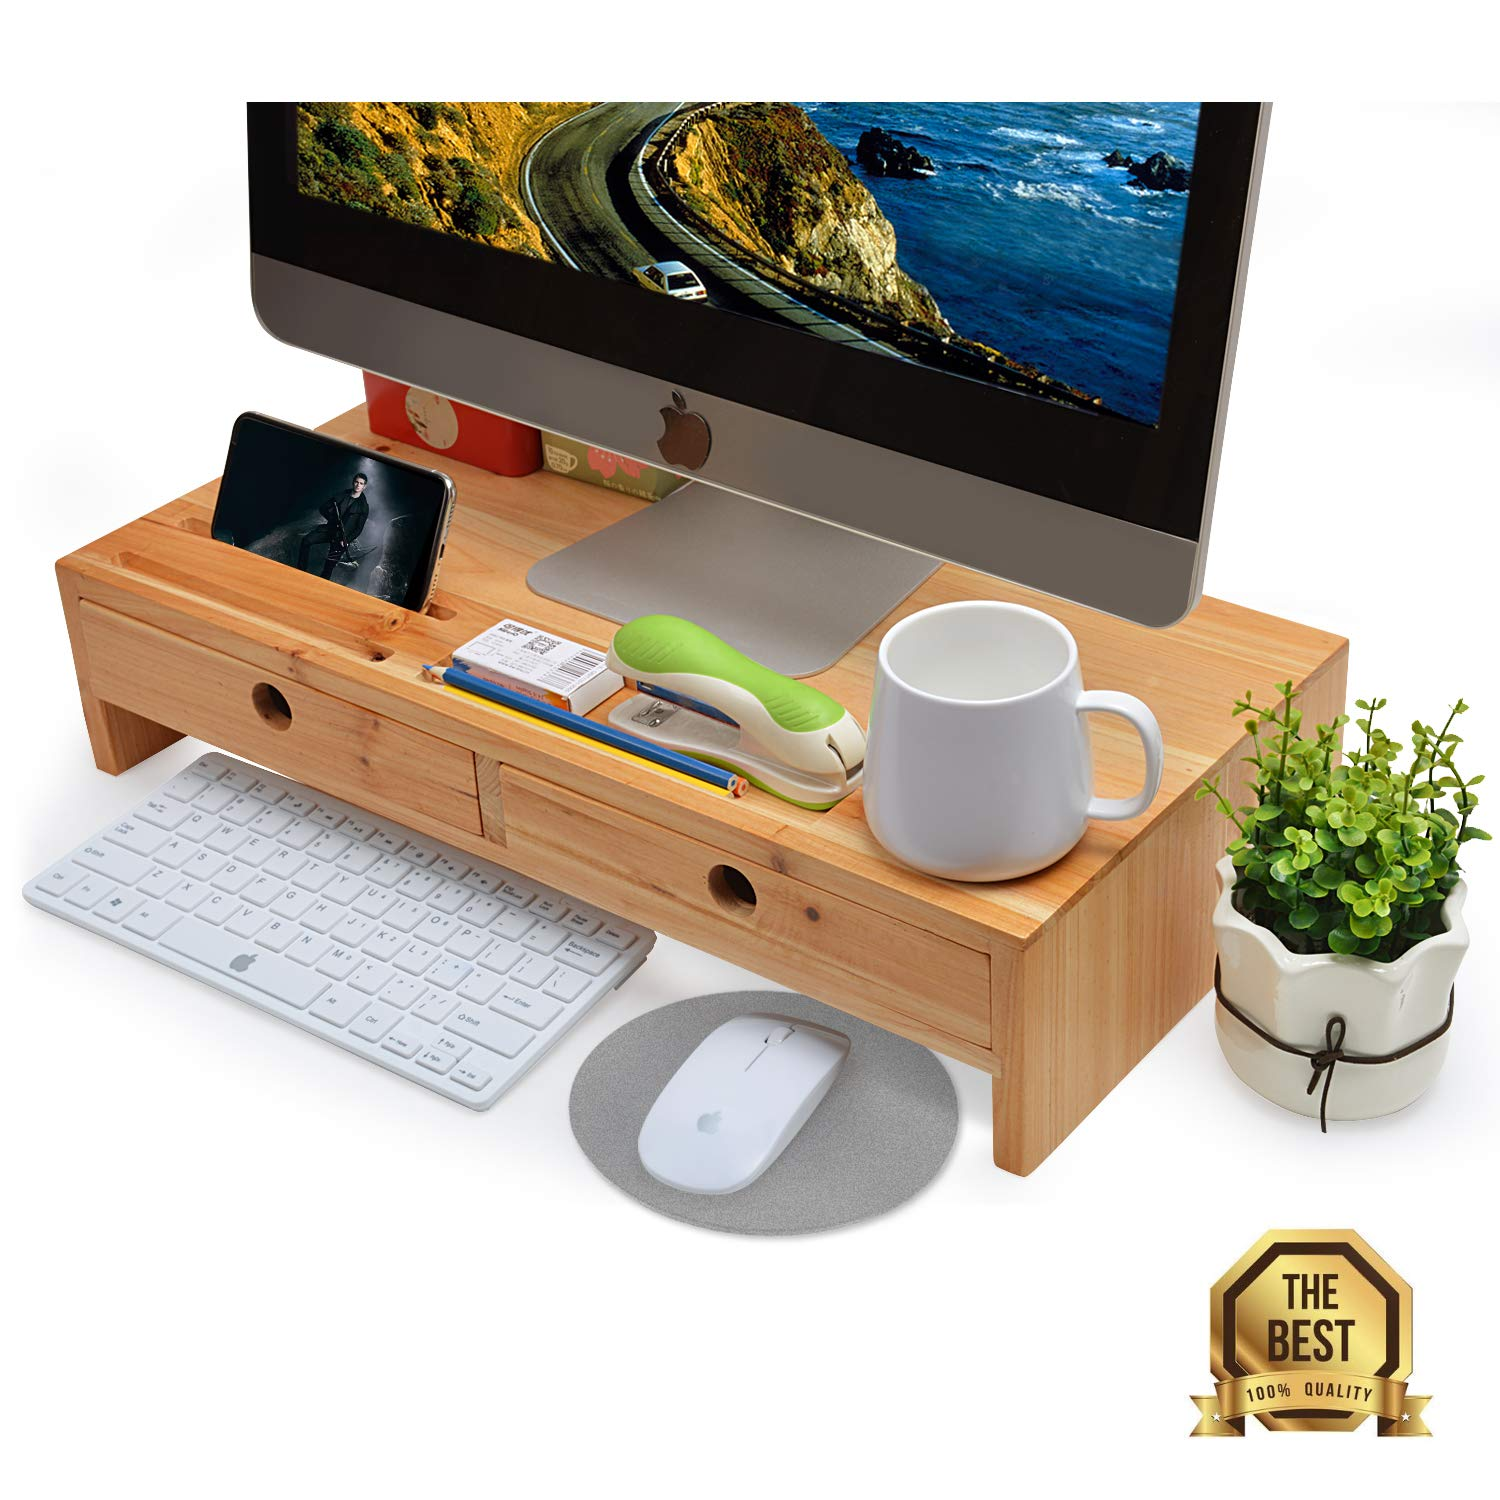 Computer Monitor Stand with Drawers - Wood TV Screen Printer Riser 22 05L  10 60W 4 70H inch, Desk Organizer in Home&Office